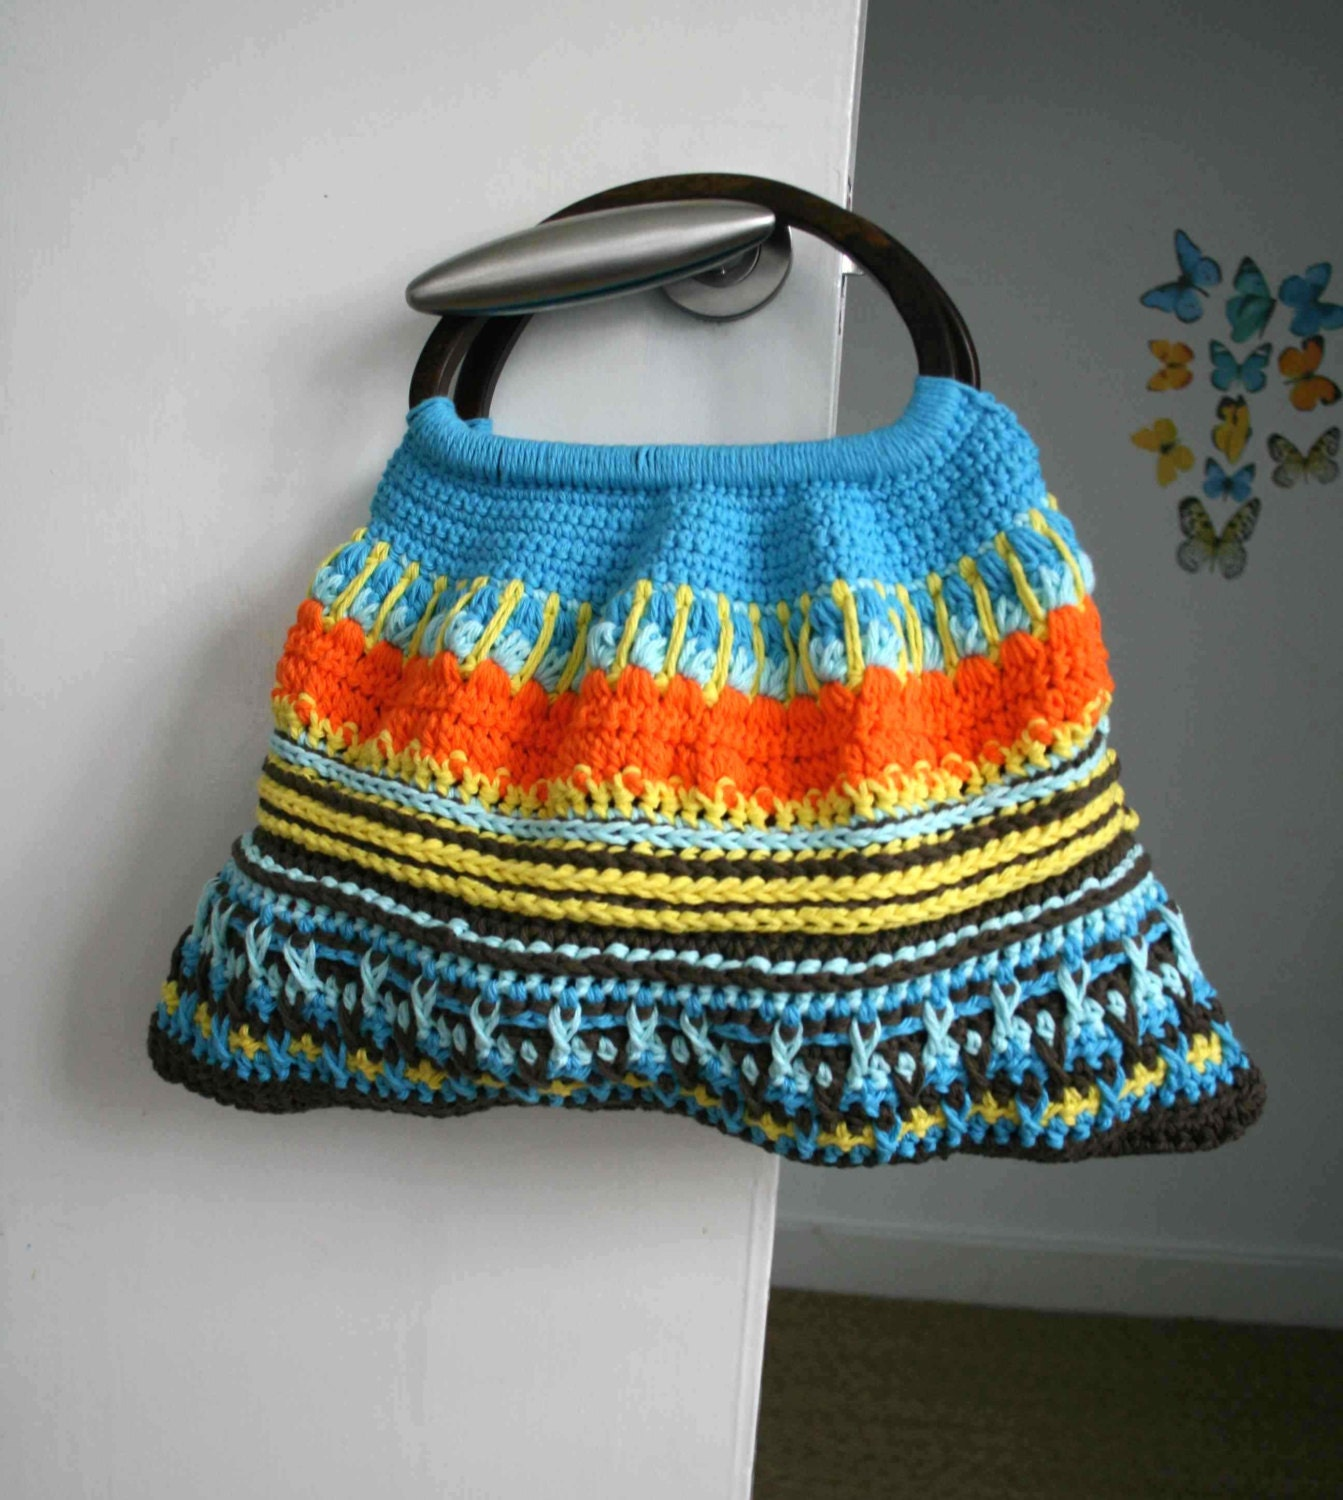 Crochet pattern wooden handle crochet purse retro by LuzPatterns